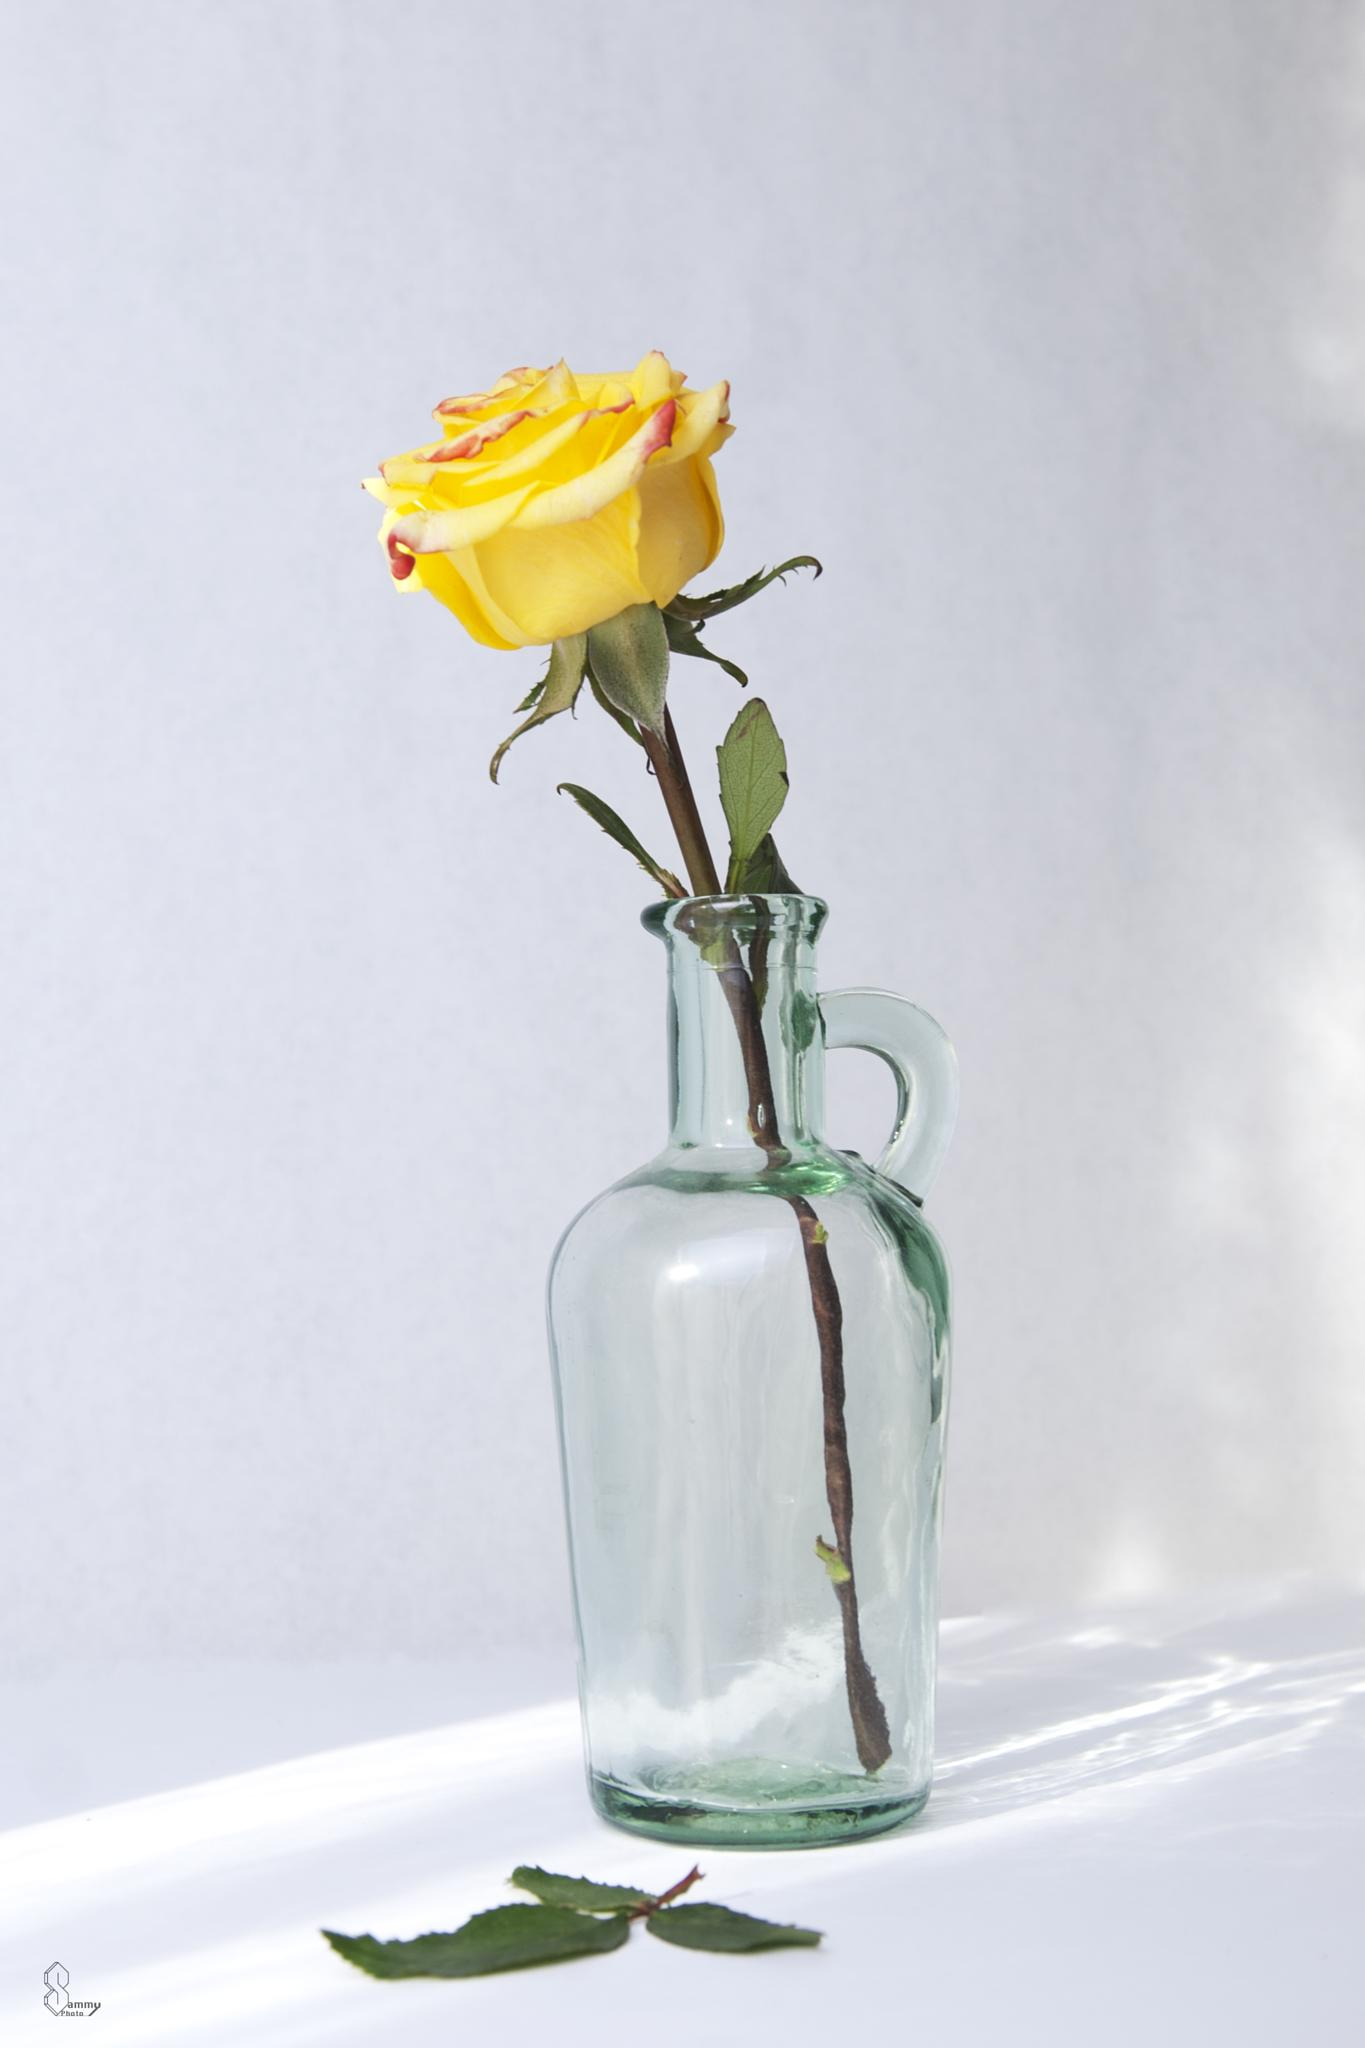 Yellow rose in an old bottle by Sammy Miller